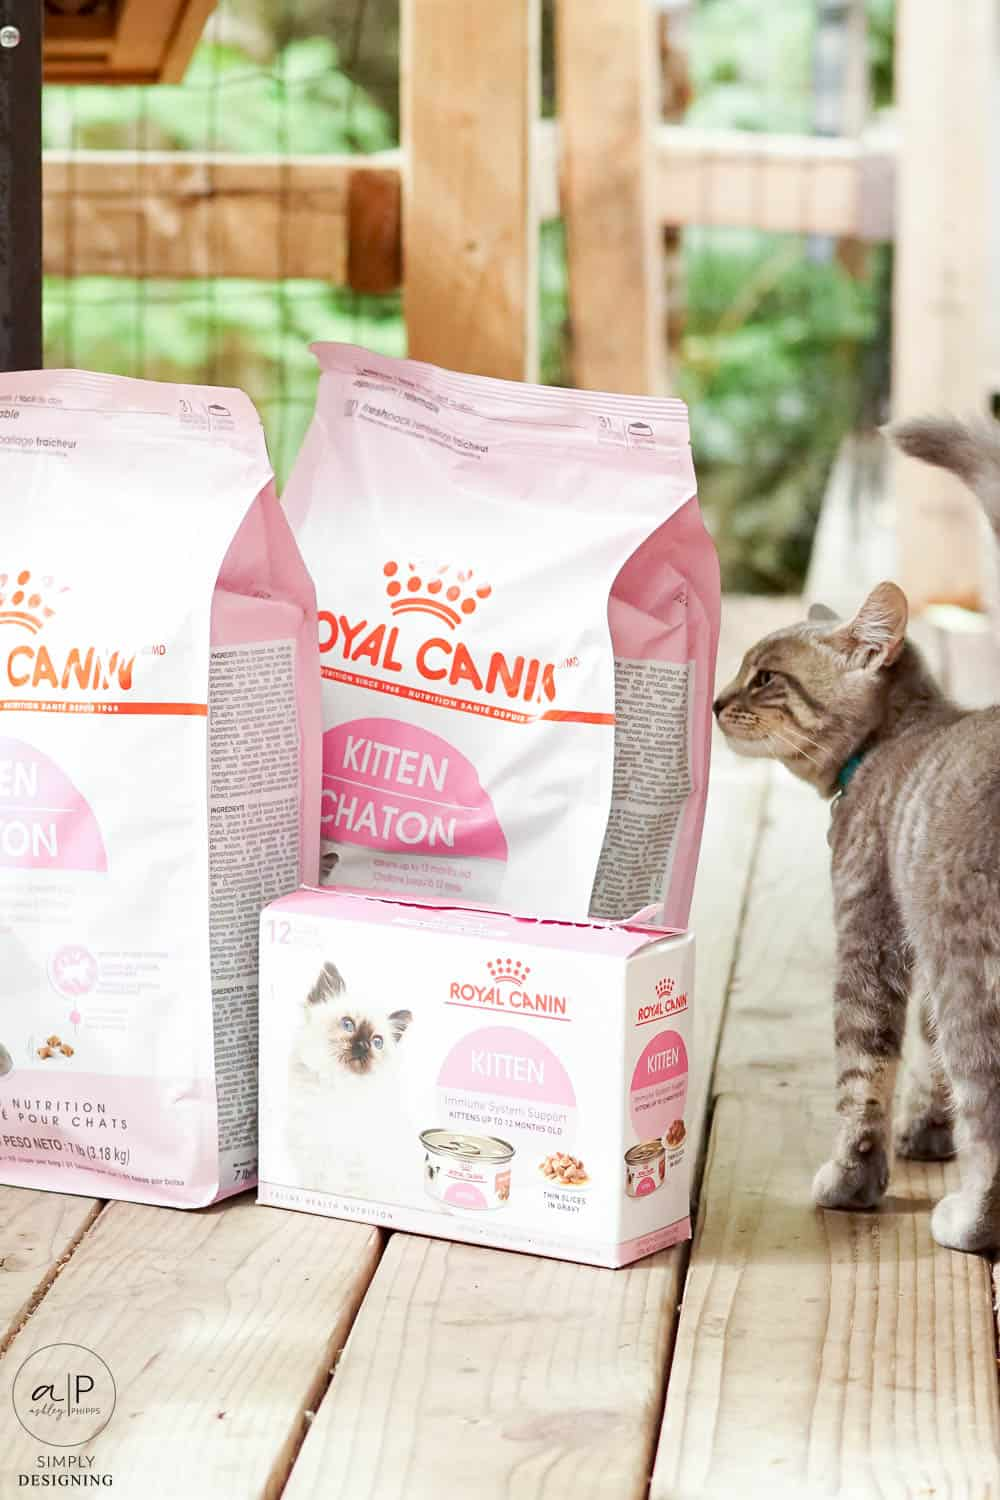 cat sniffing cat food bags